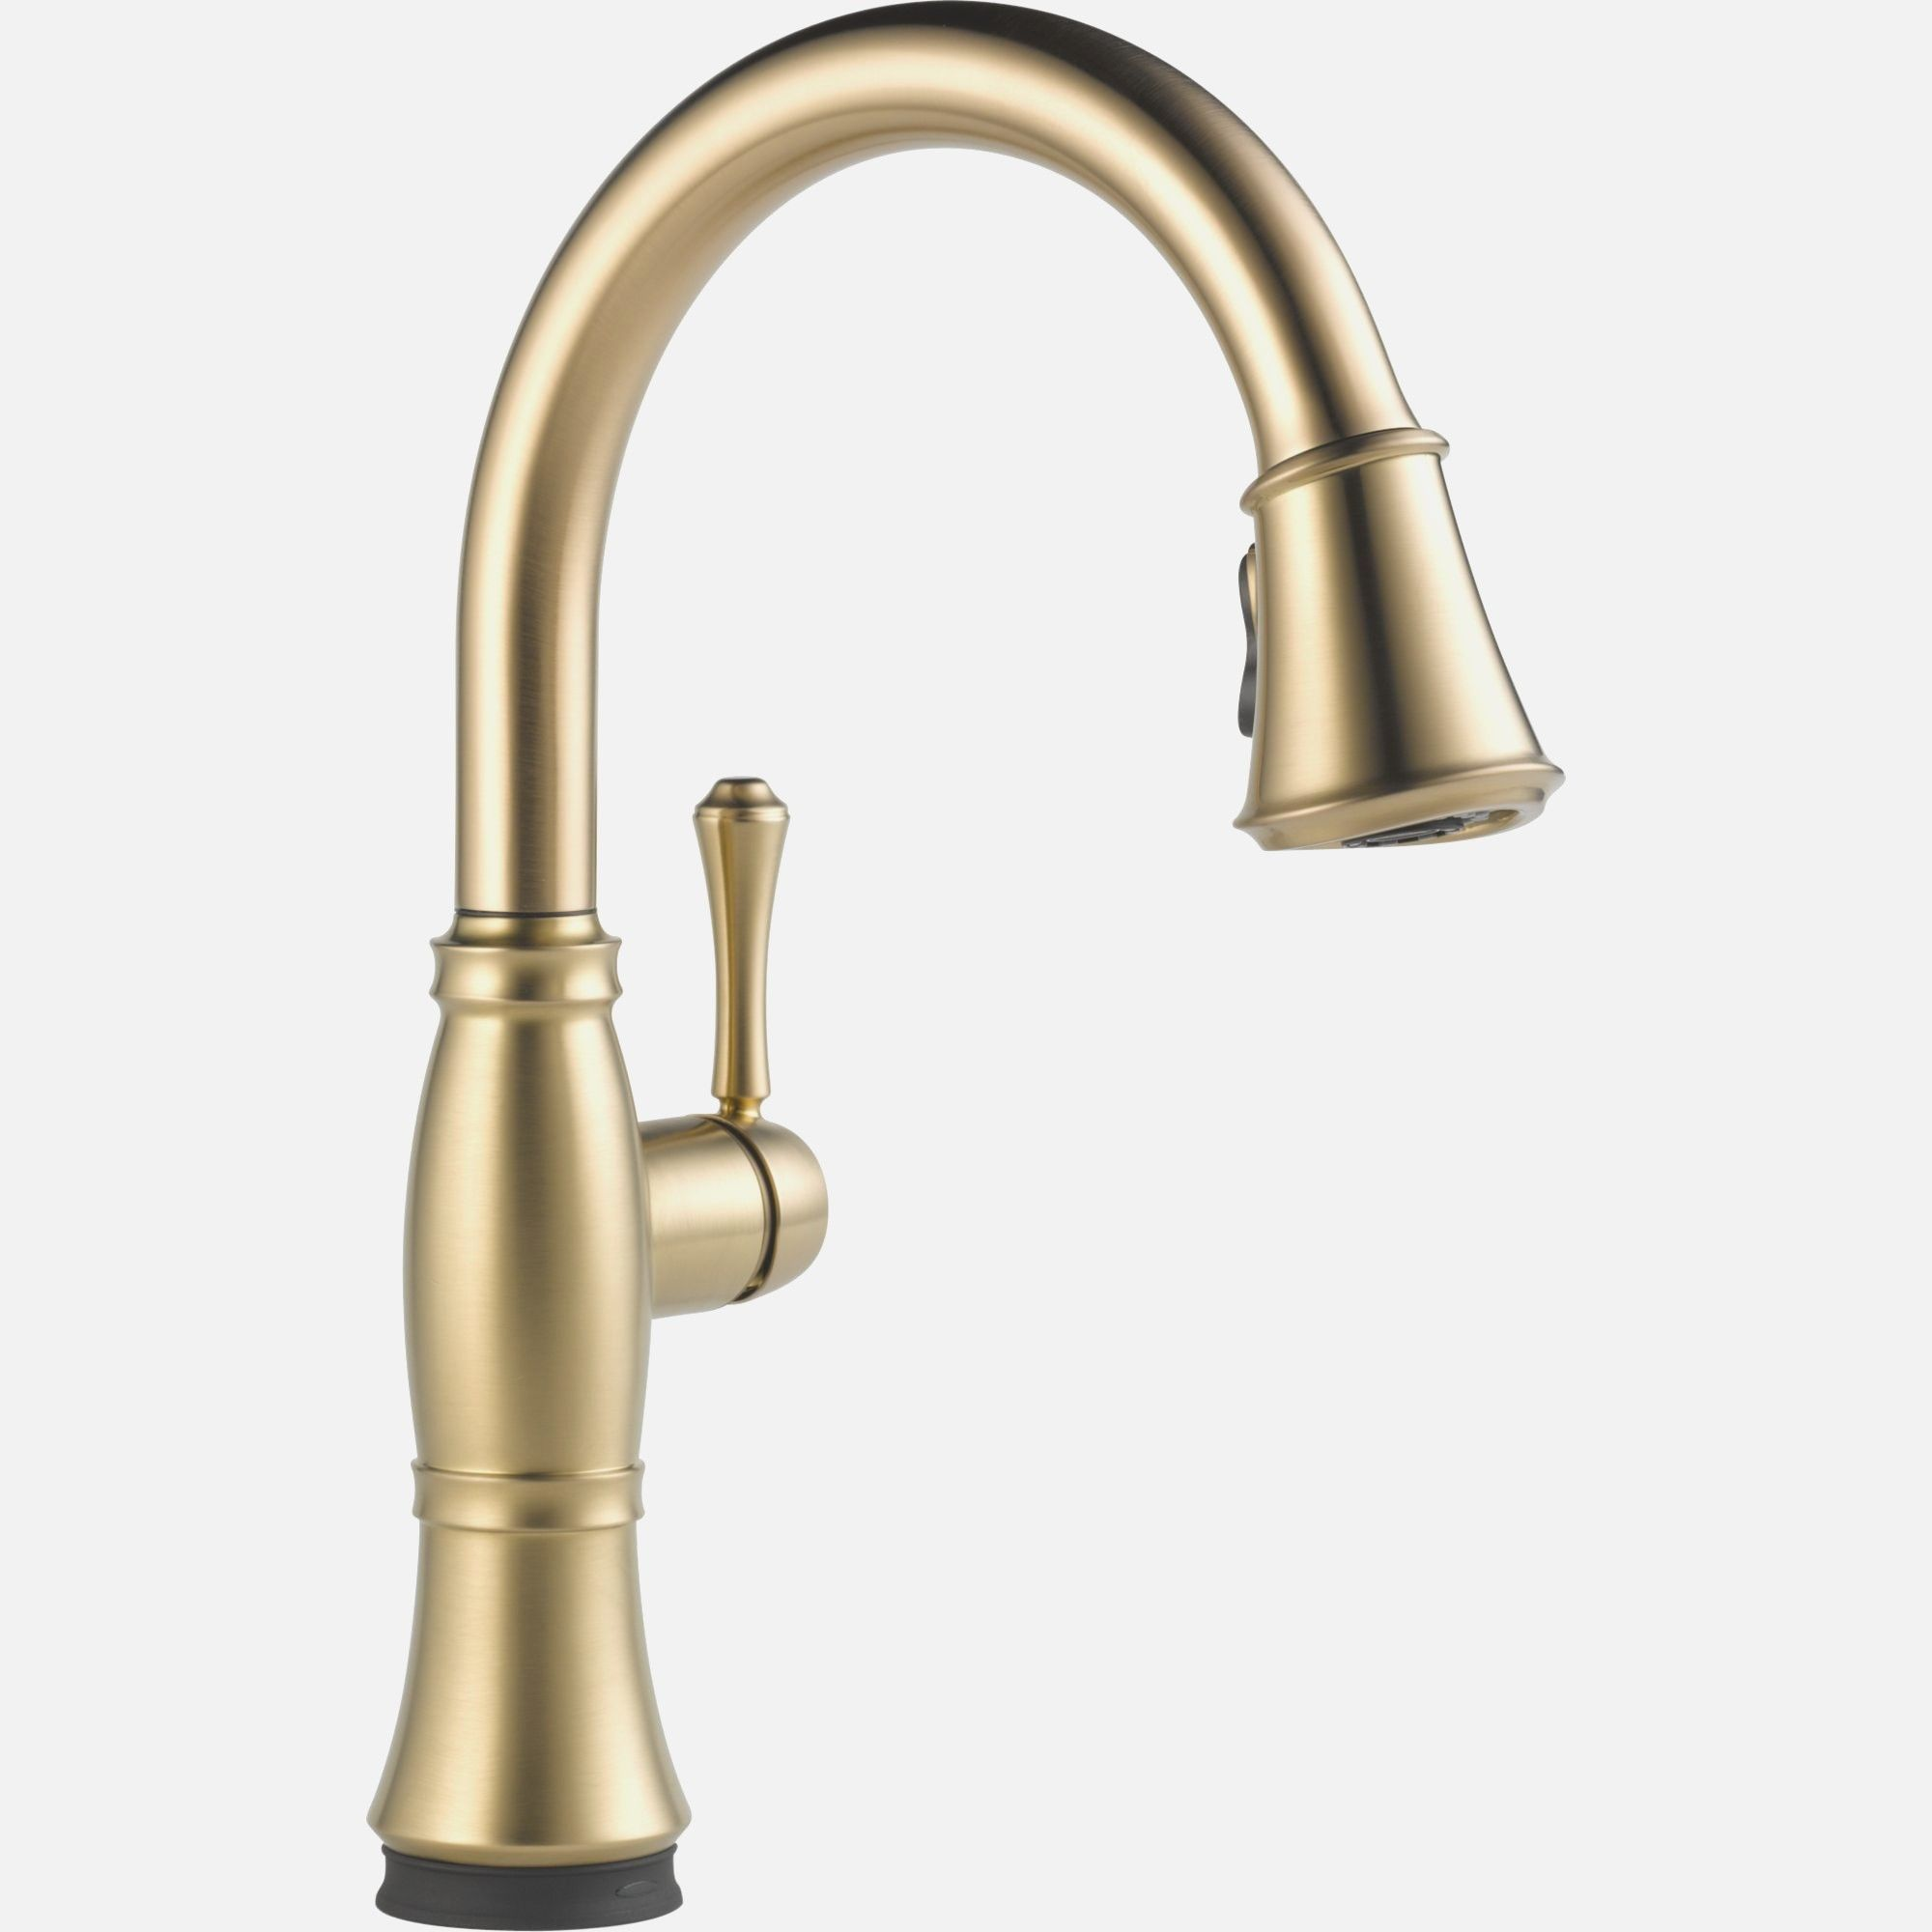 Home Depot Delta Kitchen Faucets Faucet With Soap Dispenser At Cheap